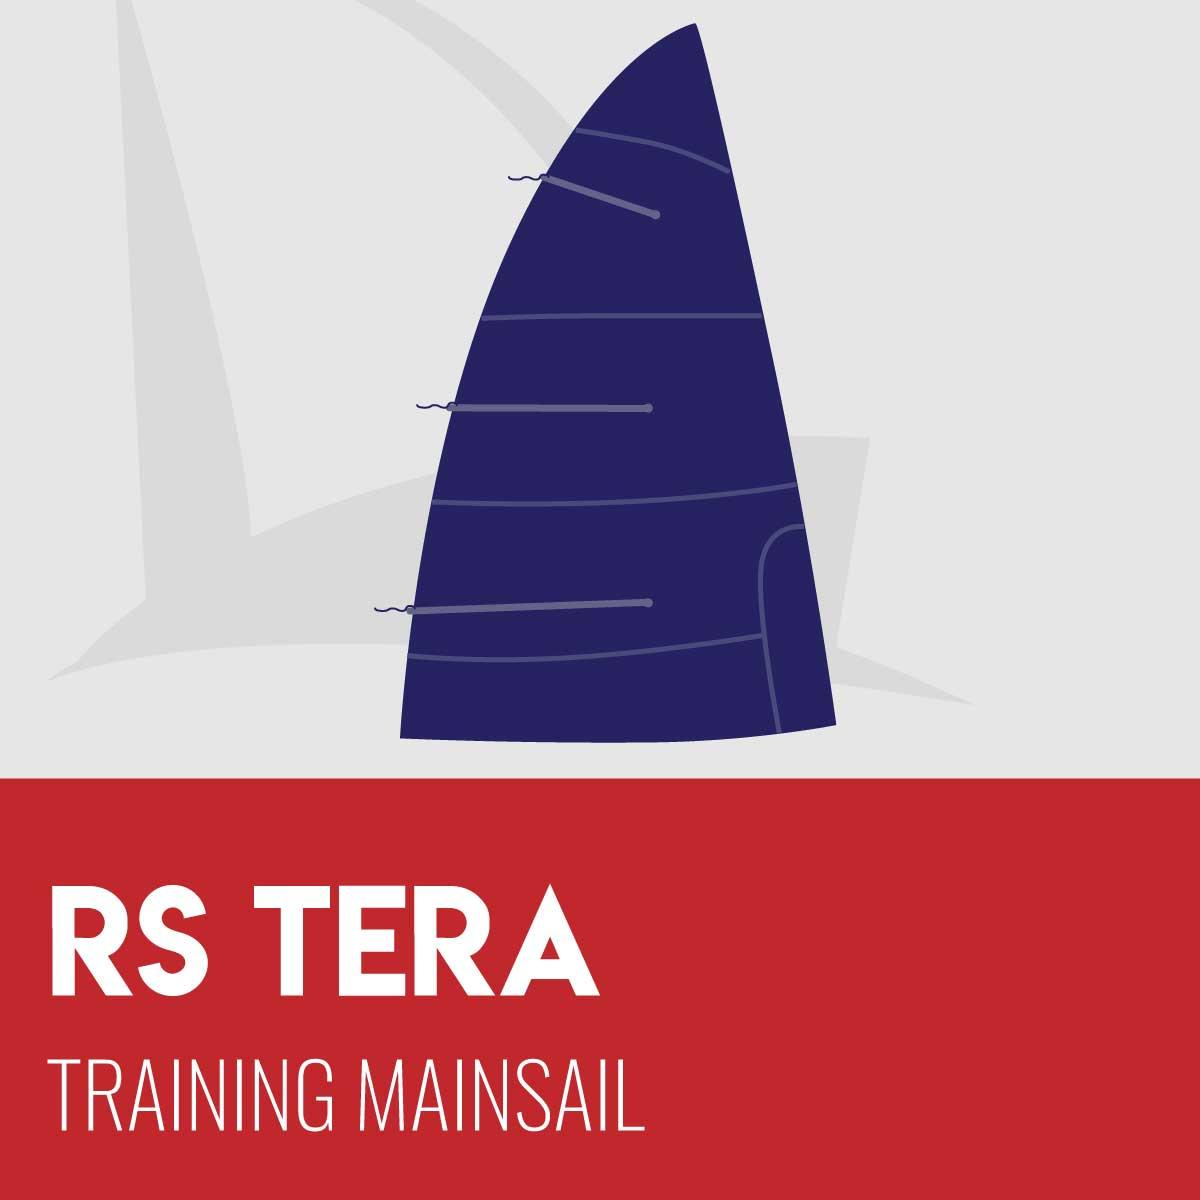 RS Tera Training Mainsail